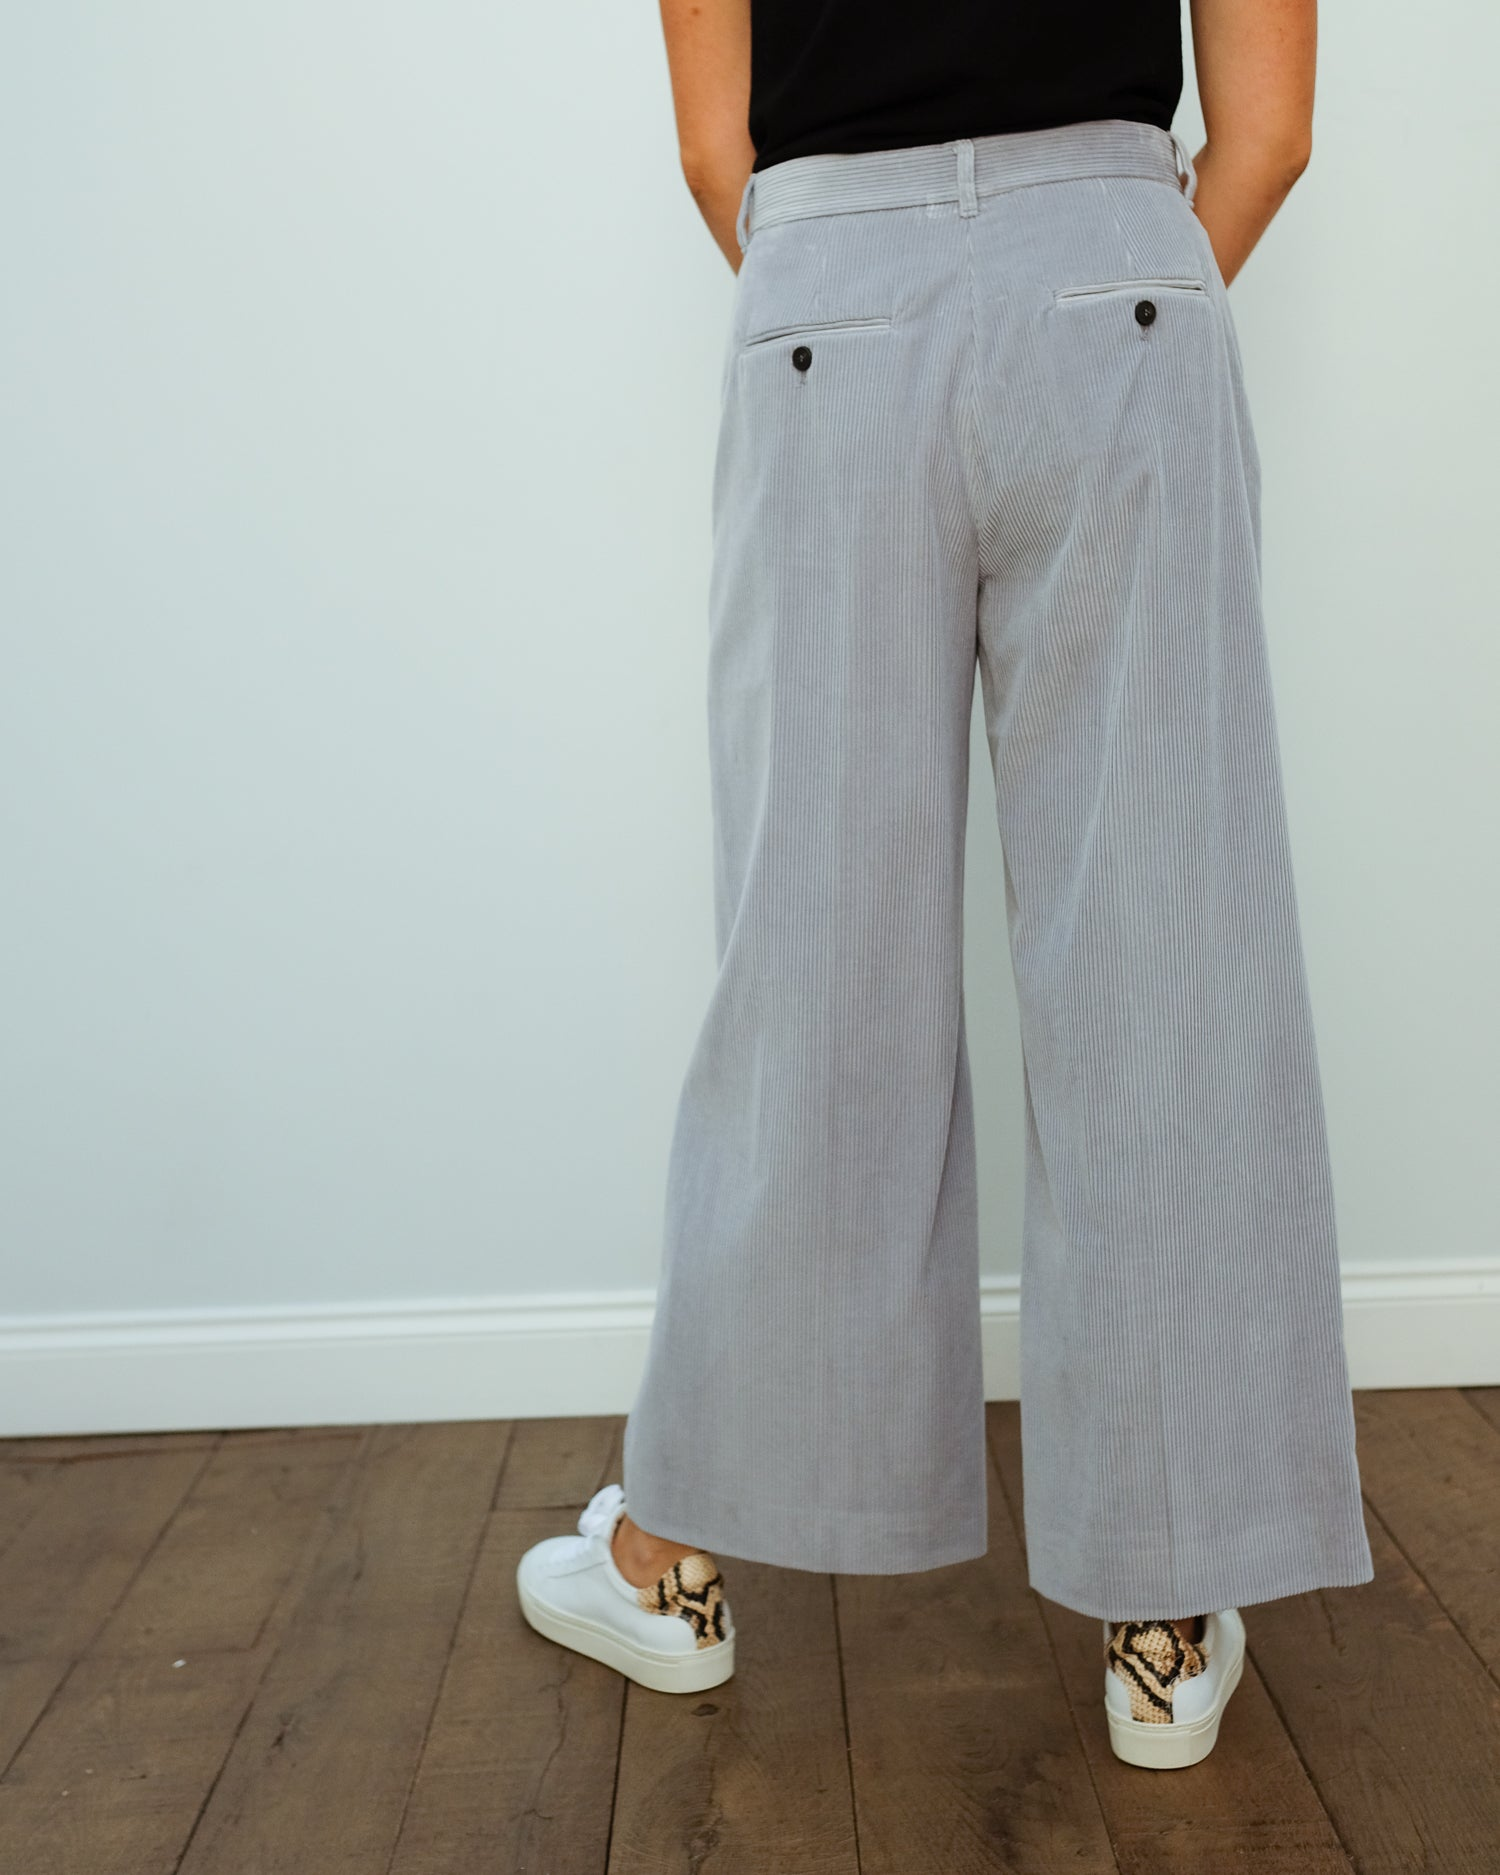 MM Tobia trousers in acqua marina